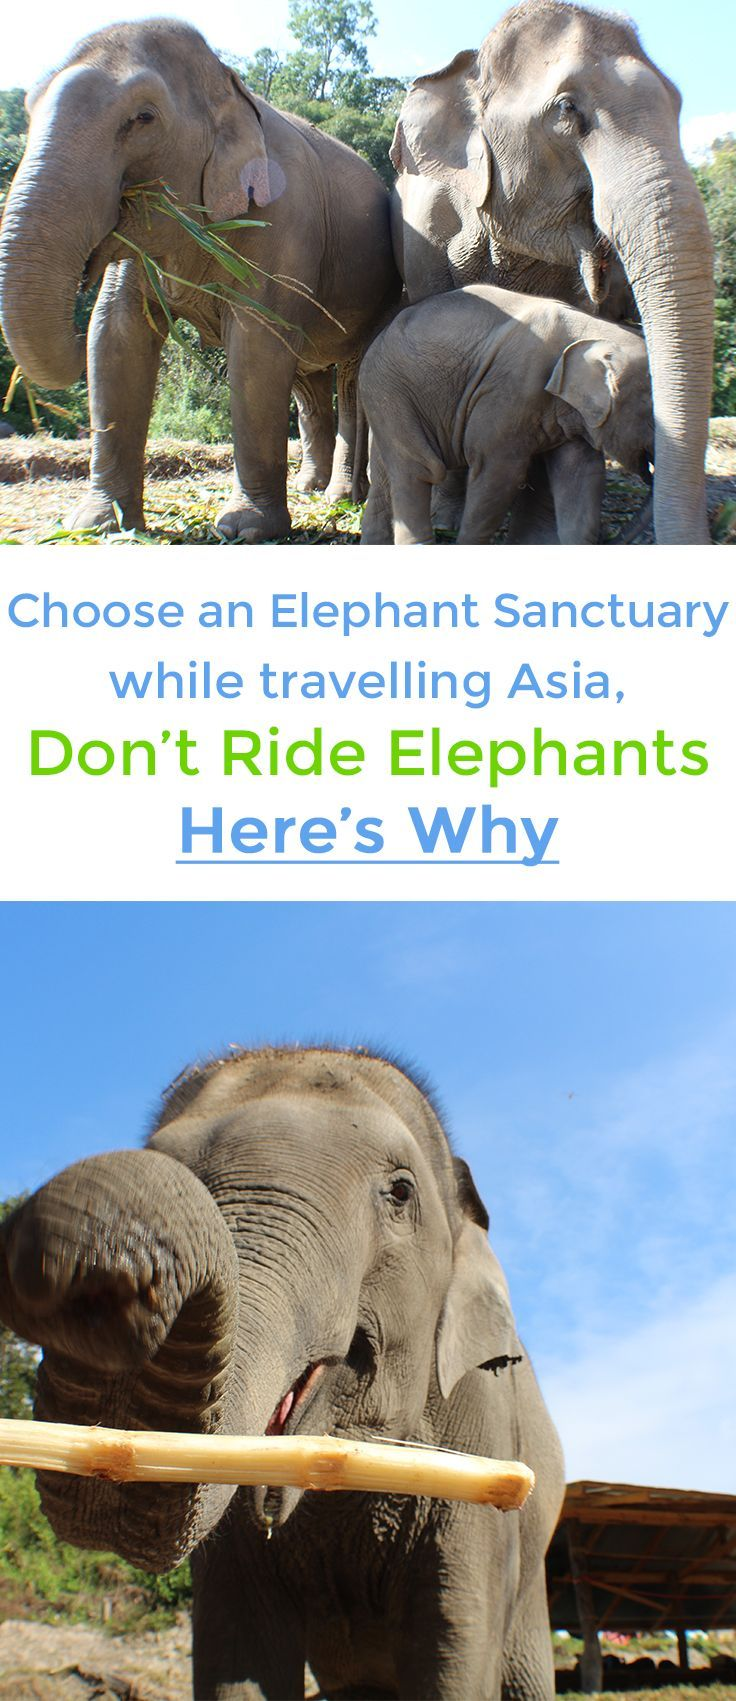 Visit the happy elephants at the Elephant Sanctuaries on your trip to Thailand or Asia! Find out why it's NOT OK to ride Elephants and how you can be a part of helping rescue them in Thailand.